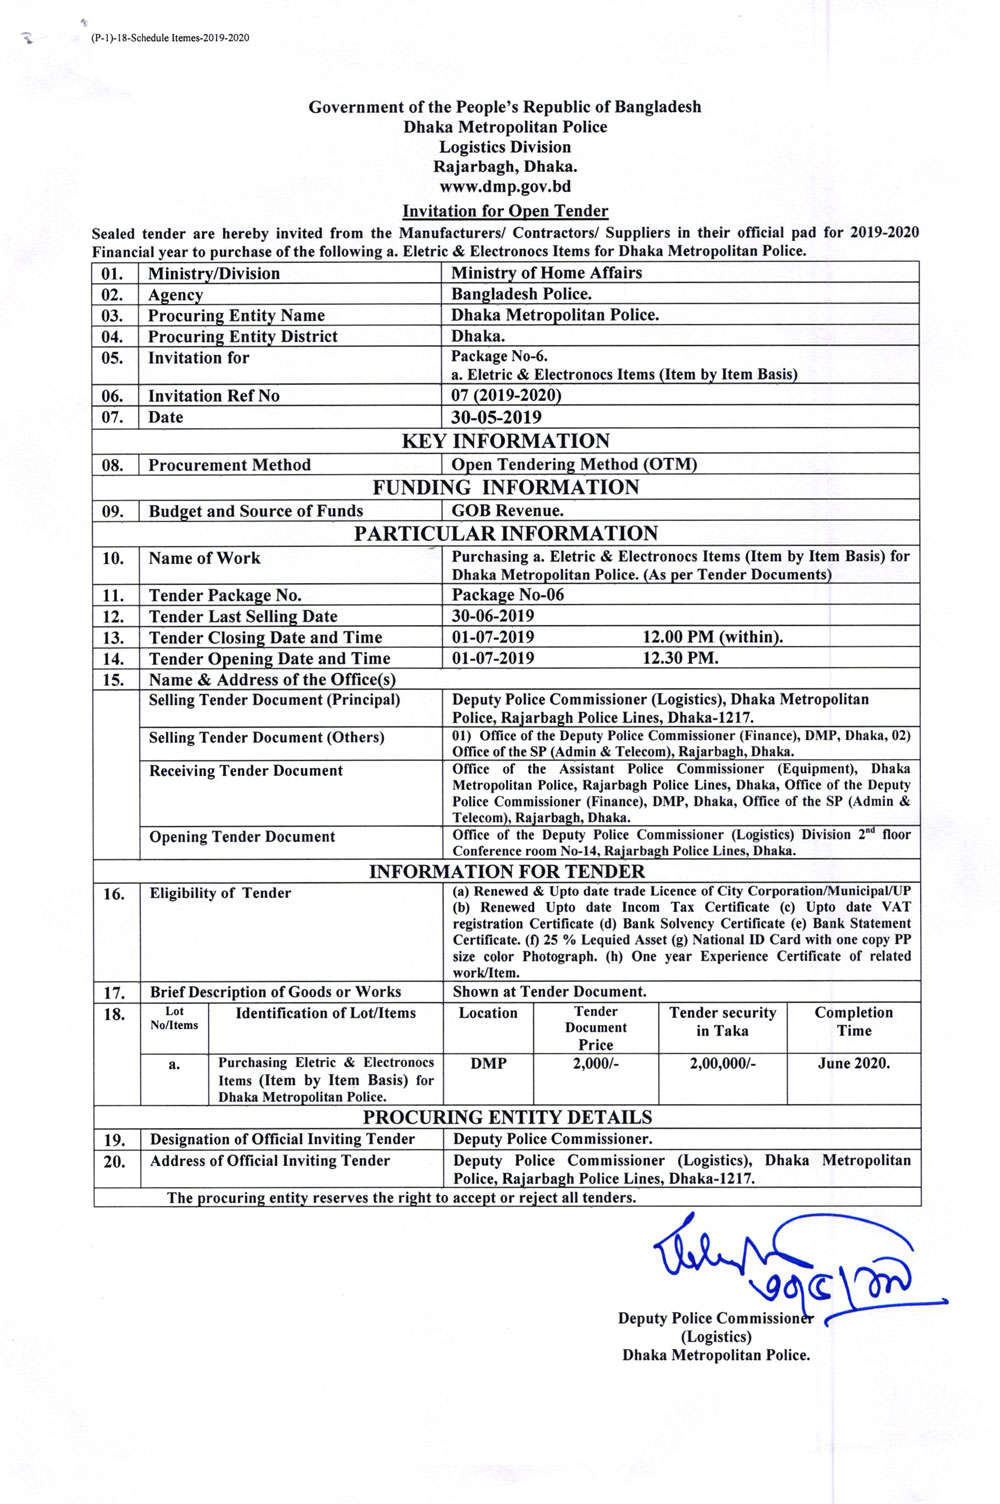 Invitation for Open Tender From Dmp Logistics Division